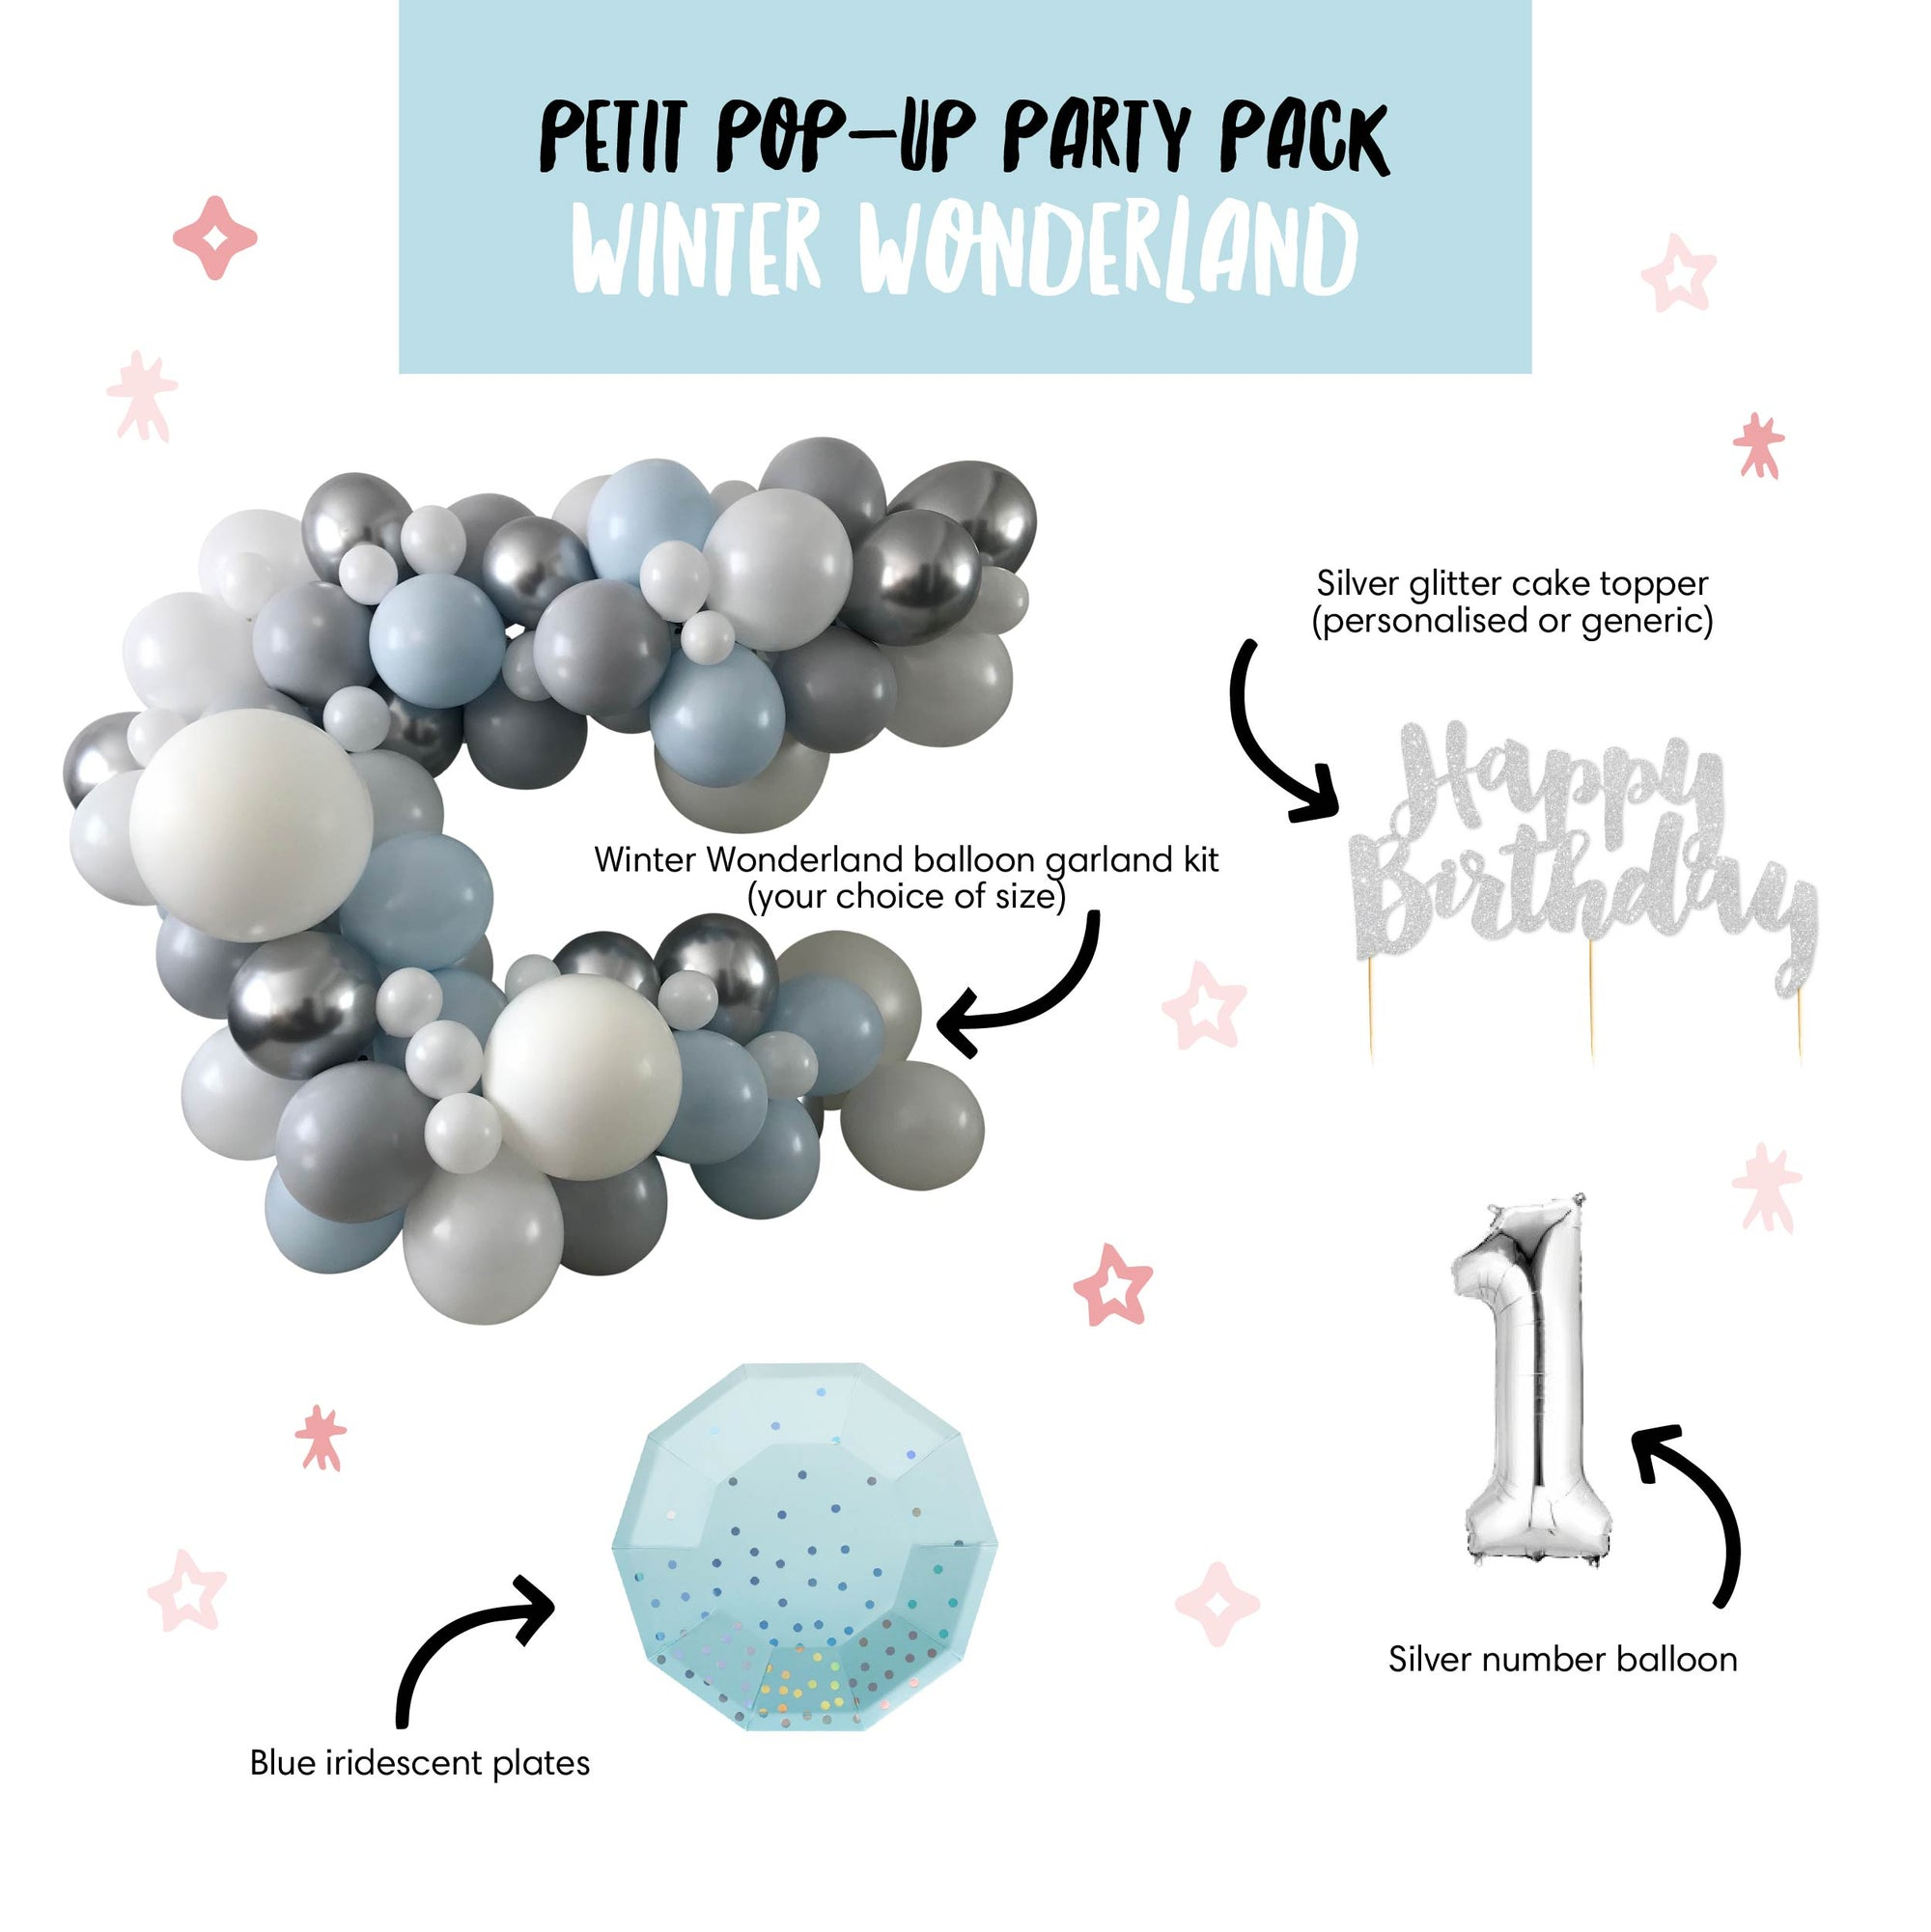 Petit Pop-Up Party Pack - Winter Wonderland